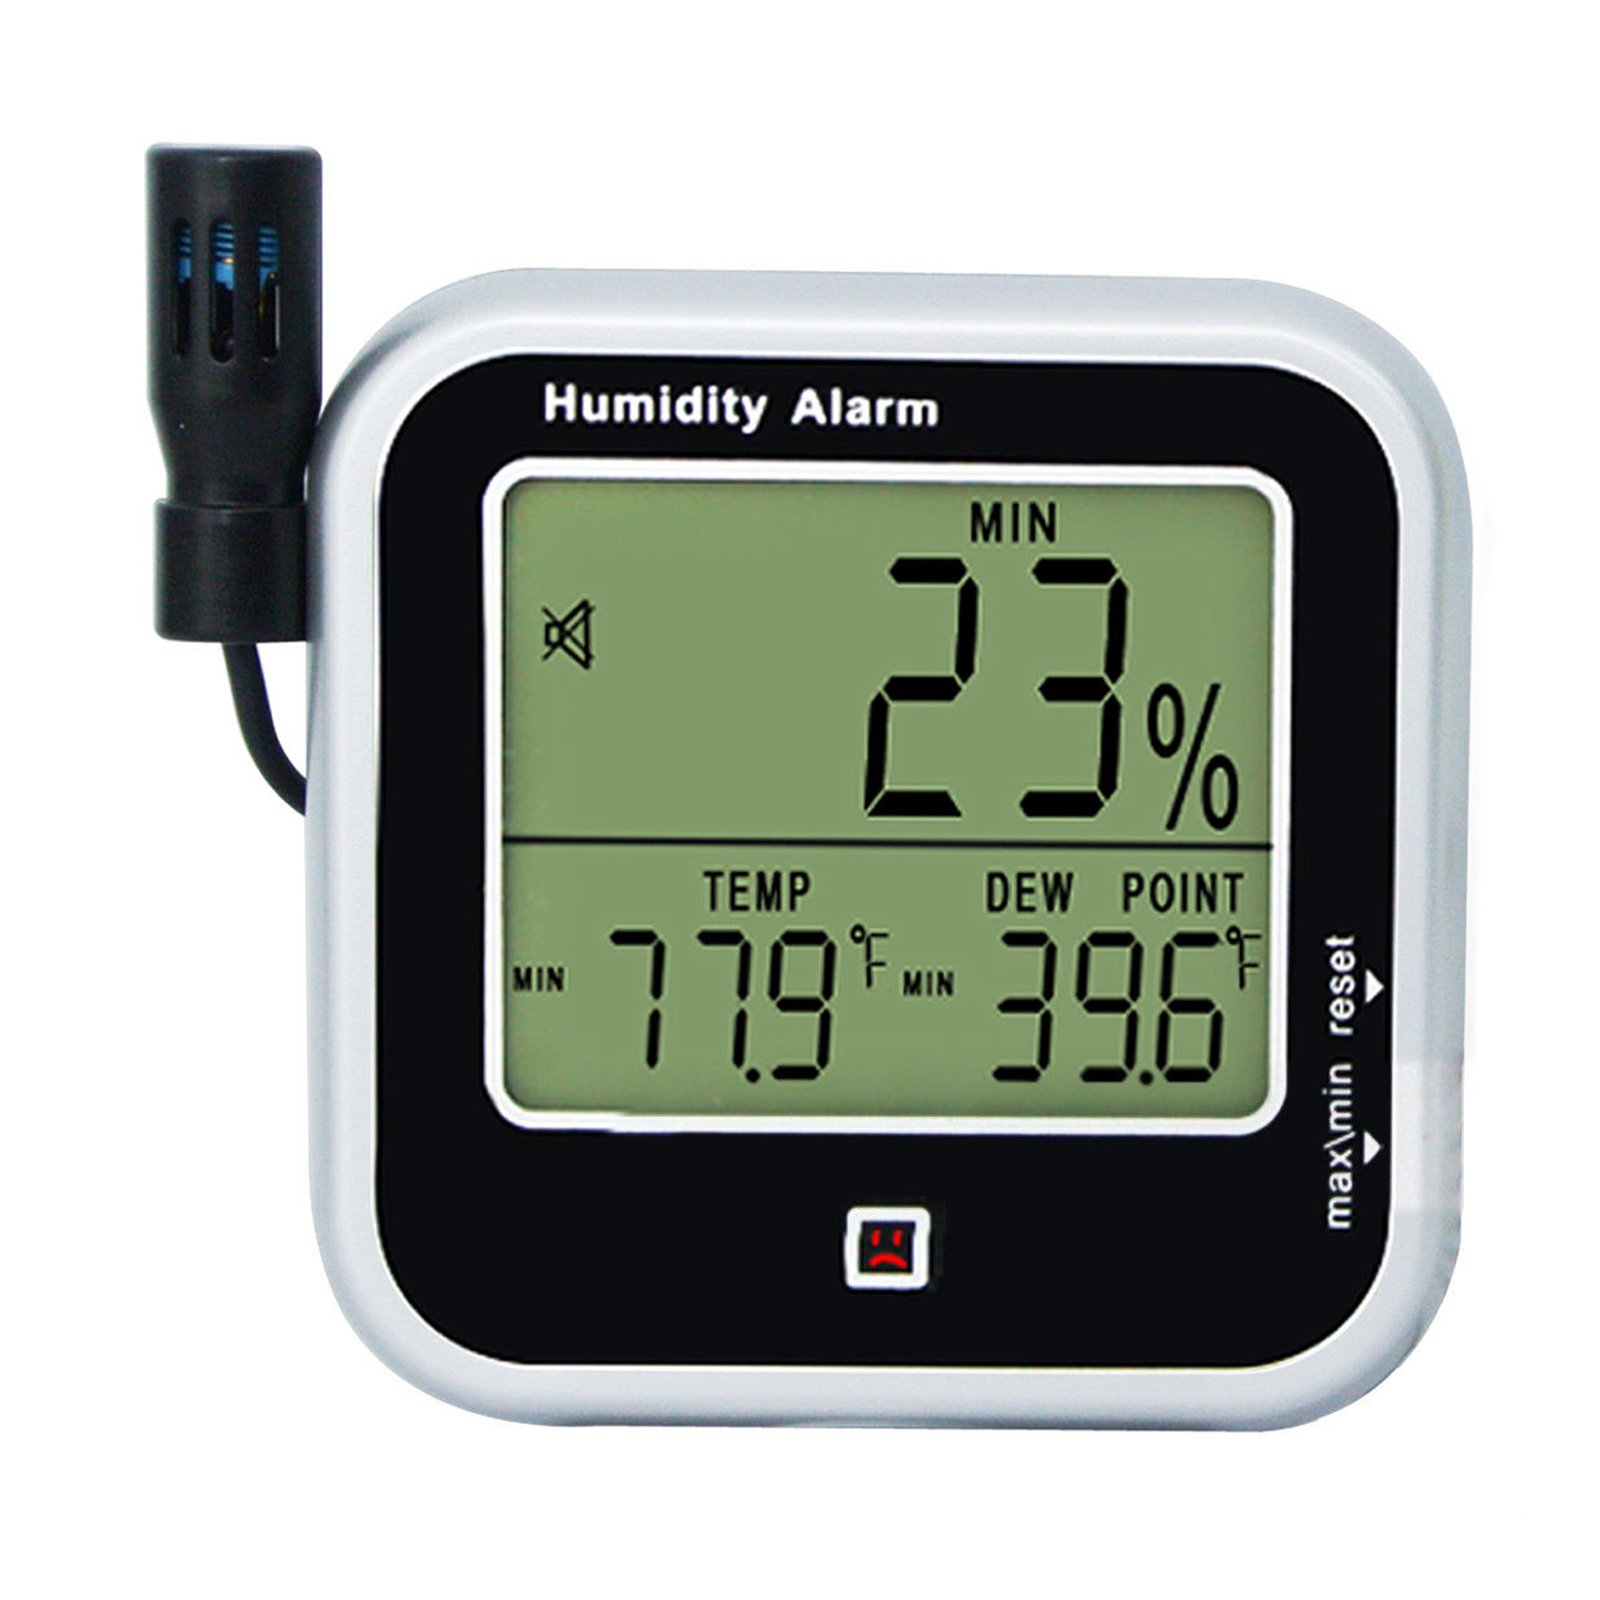 Digital Indoor or Outdoor Hygrometer and Thermometer Thermo-hygrometer, Dew Point Humidity Alarm 14~140°F Temperature Monitor Meter, Handheld/Wall-mount/Desktop by Gain Express